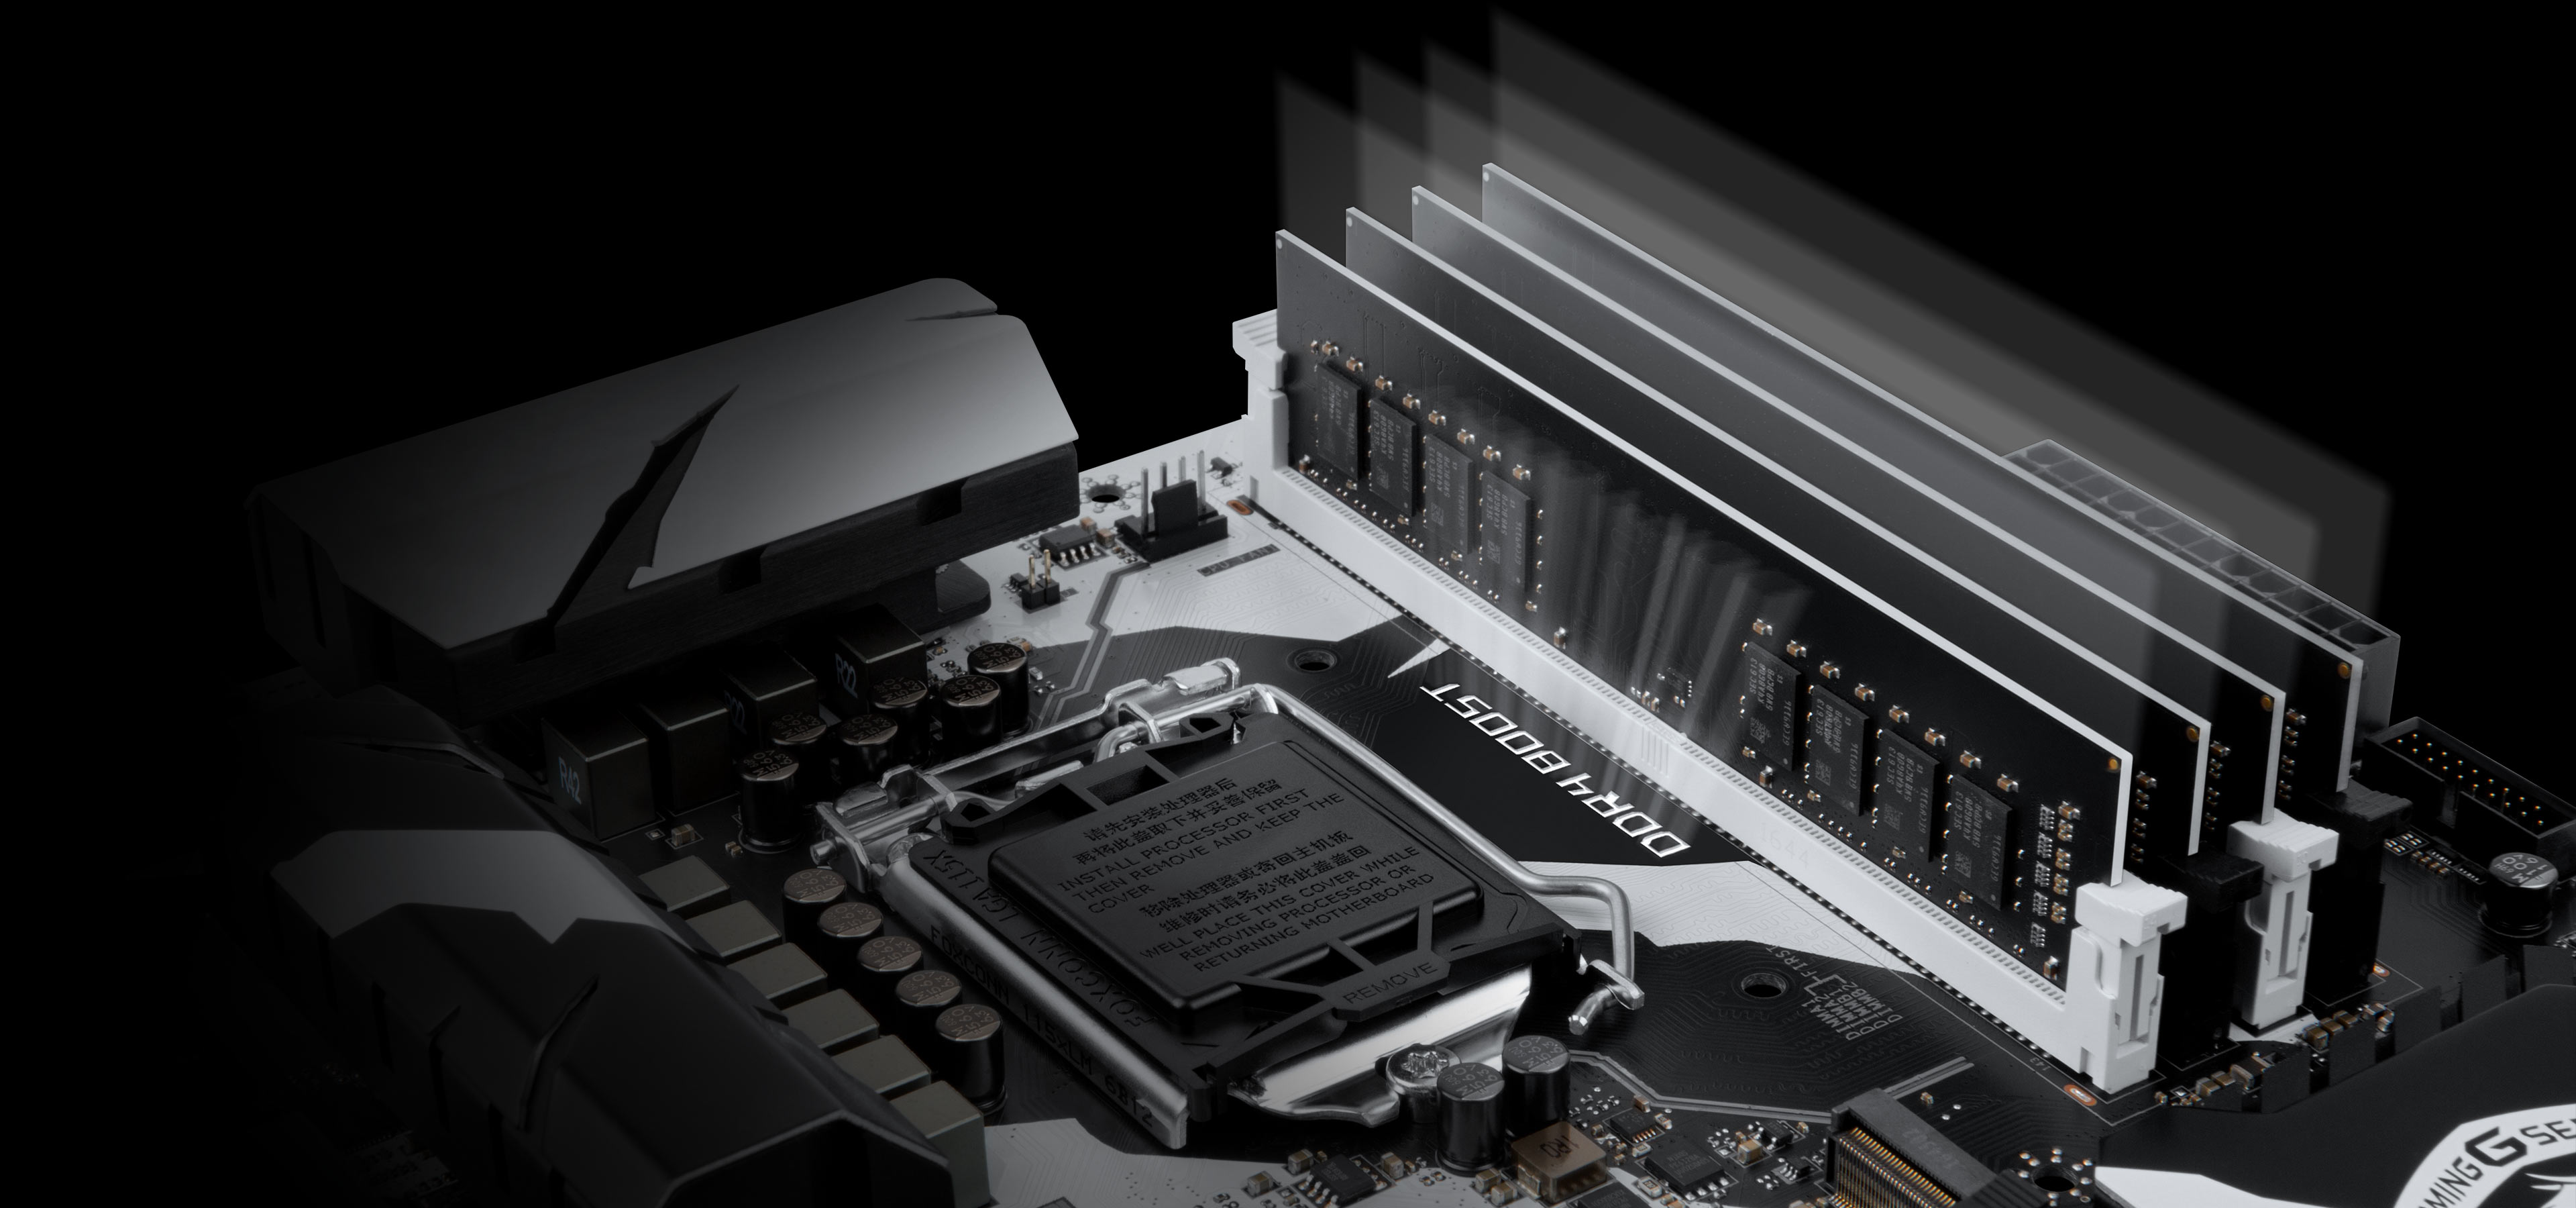 Help Specs And Scematics For A Keyboard Mod Overclockers Forums